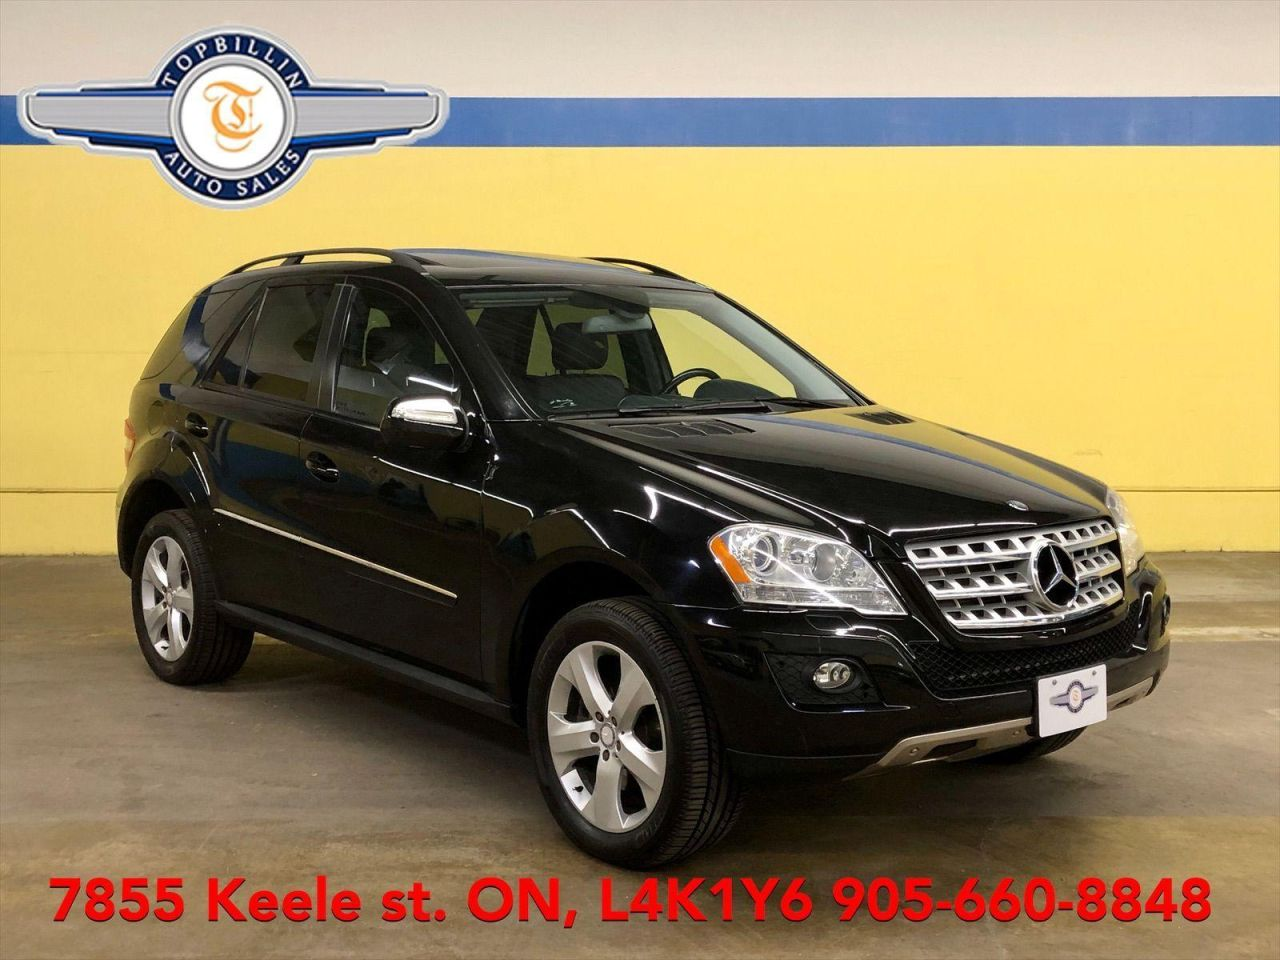 2009 Mercedes-Benz M-Class 3.5L GAS, Navi, Leather, Sunroof, Only 141K